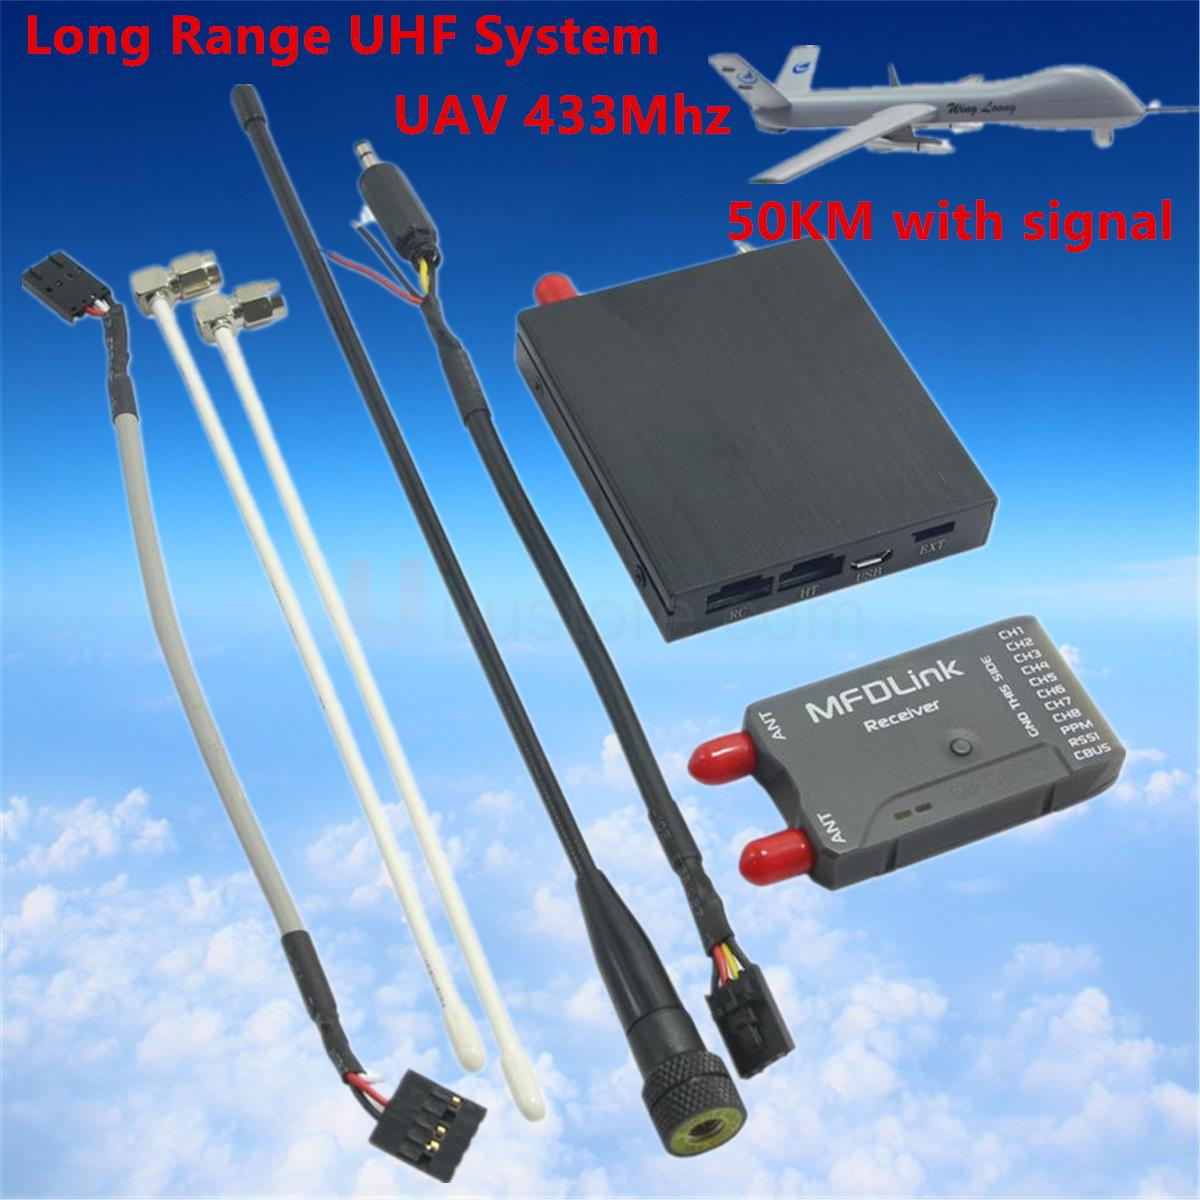 50KM Long Range MFDLink Rlink 433Mhz 16CH 1W RC FPV UHF System Transmitter w/8 Channel Receiver TX+RX Set For high fpv quality